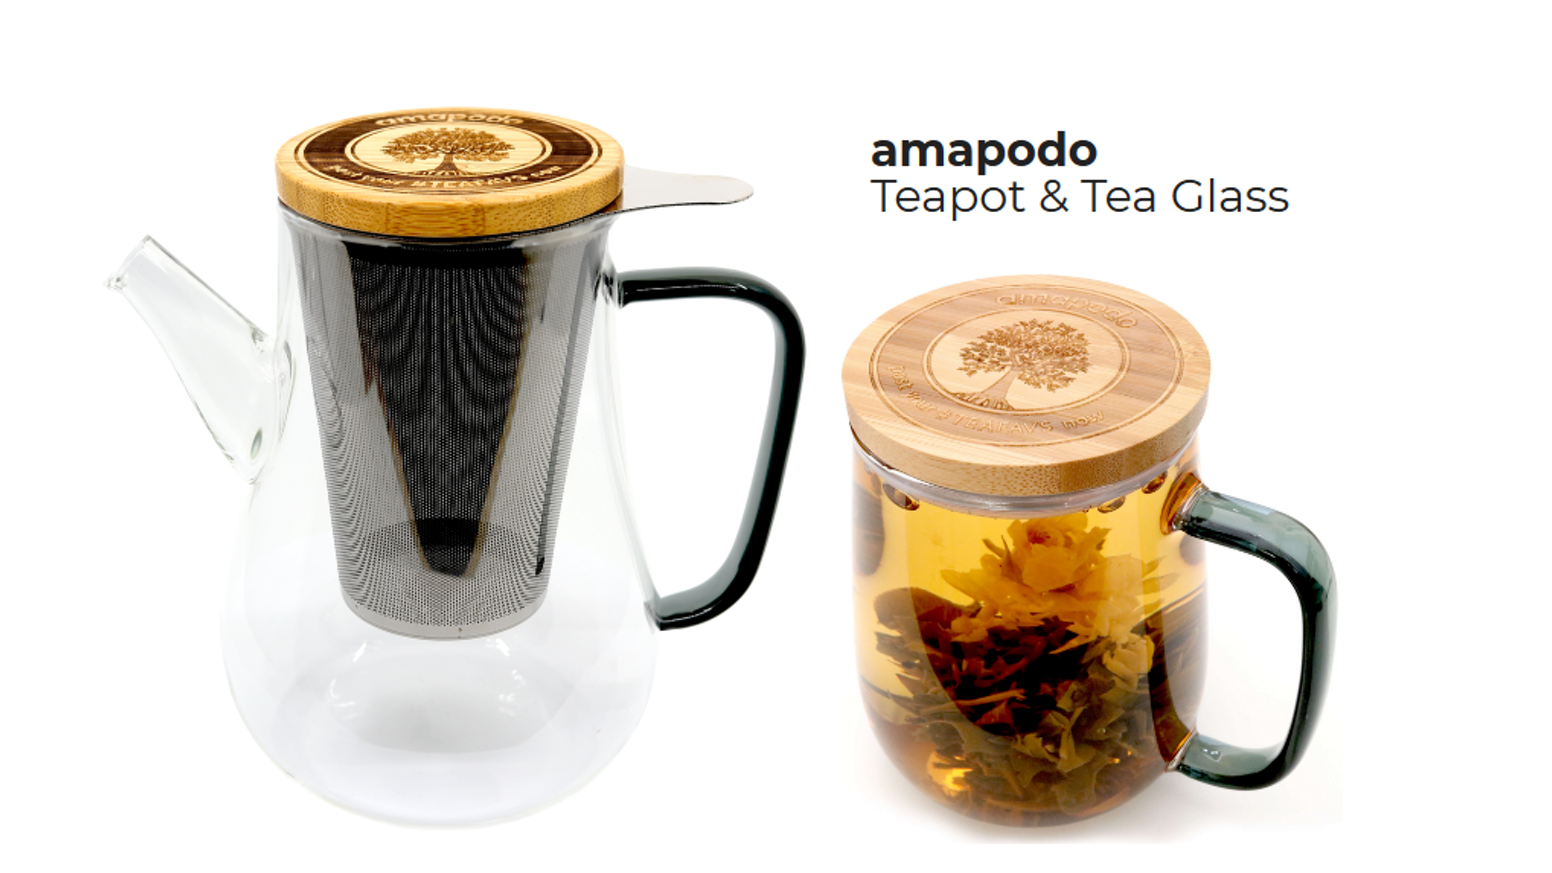 The very best of making it easy to brew up rich, full tea flavours - all in a super simple, unique, healthy and eco-friendly design.